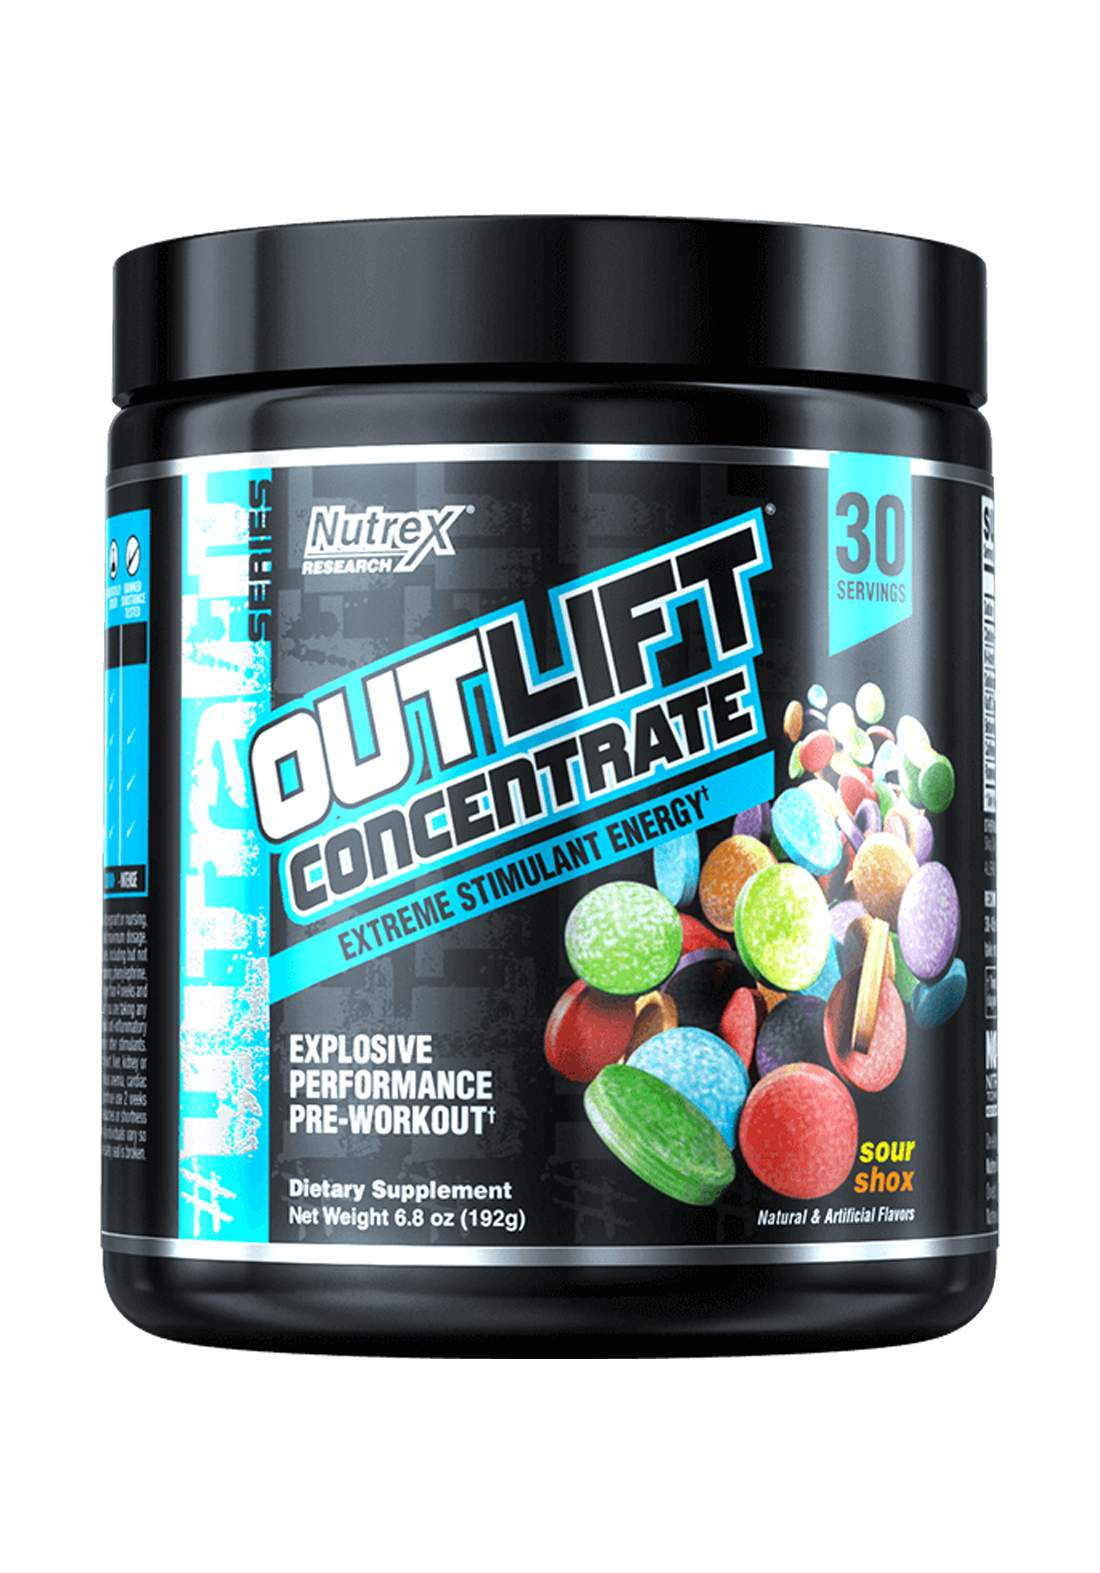 Nutrex Outlift Concentrate Extreme Energy Stimulant Sour Shox 309Gm 30 Servings  مكمل غذائي